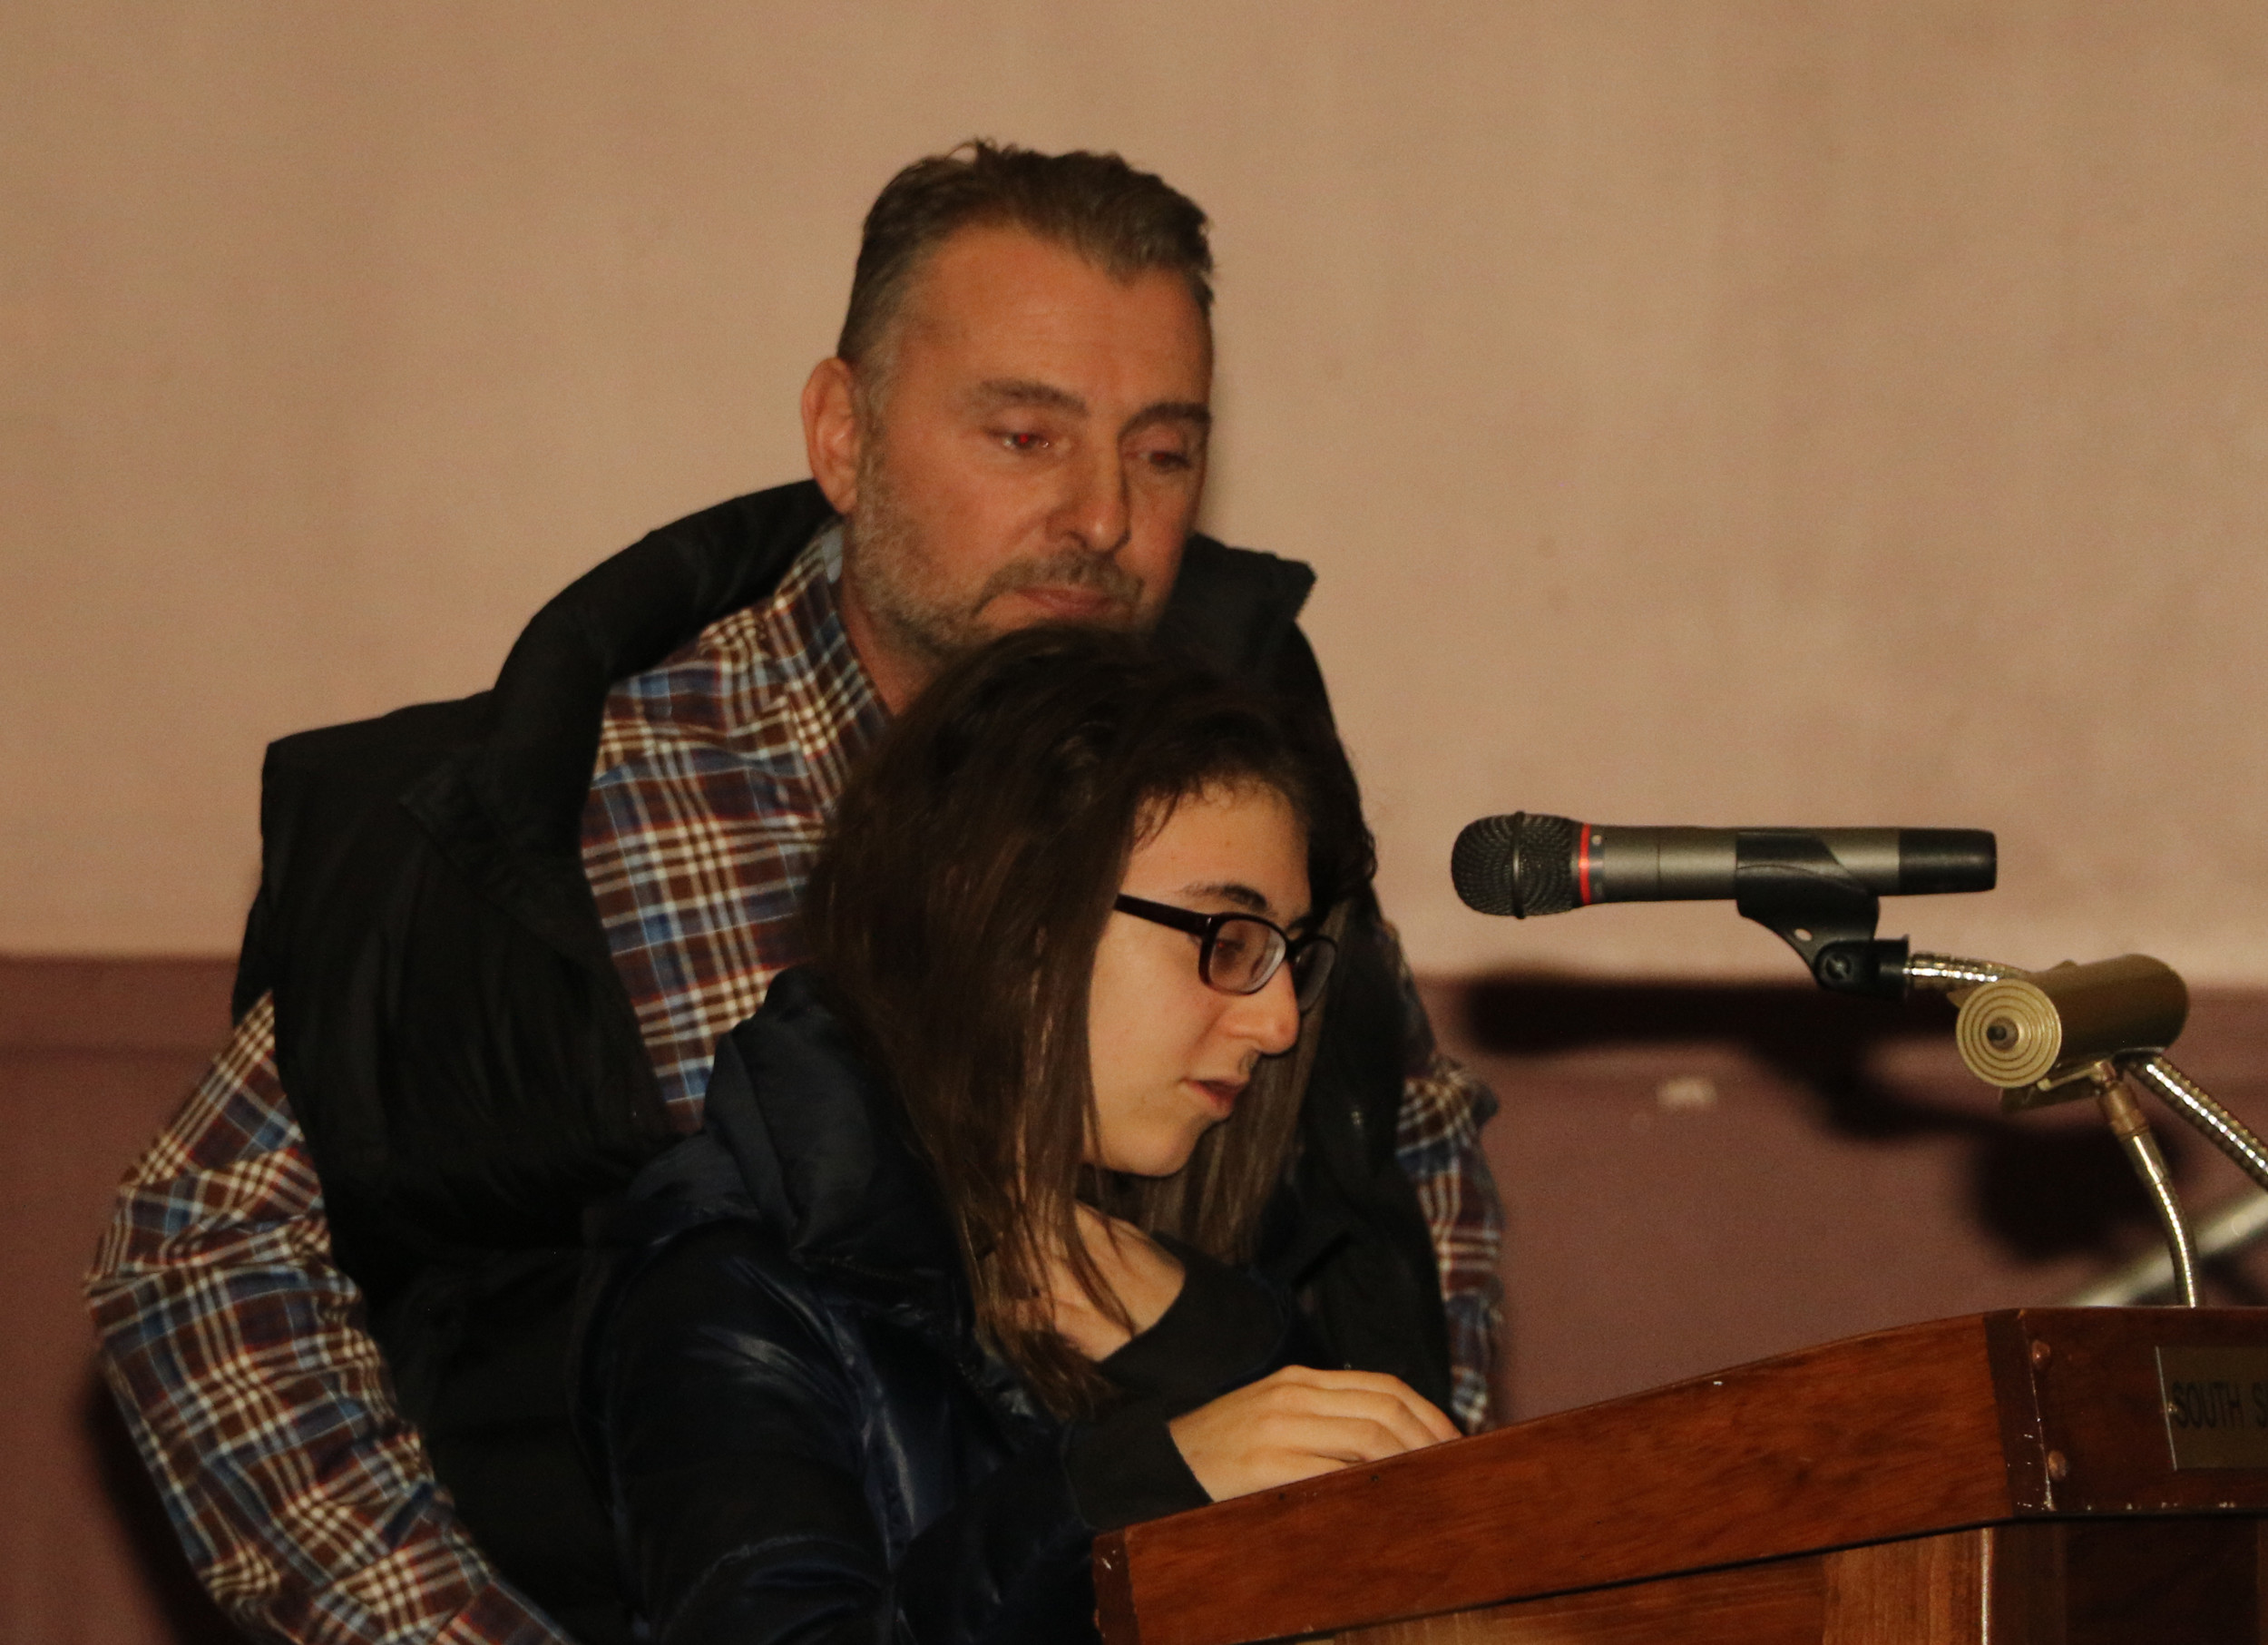 Ava Corbett, 14, of Plainview, with her father, Tim. She spoke of the difficulties she was facing in high school and the toll they were taking on her.